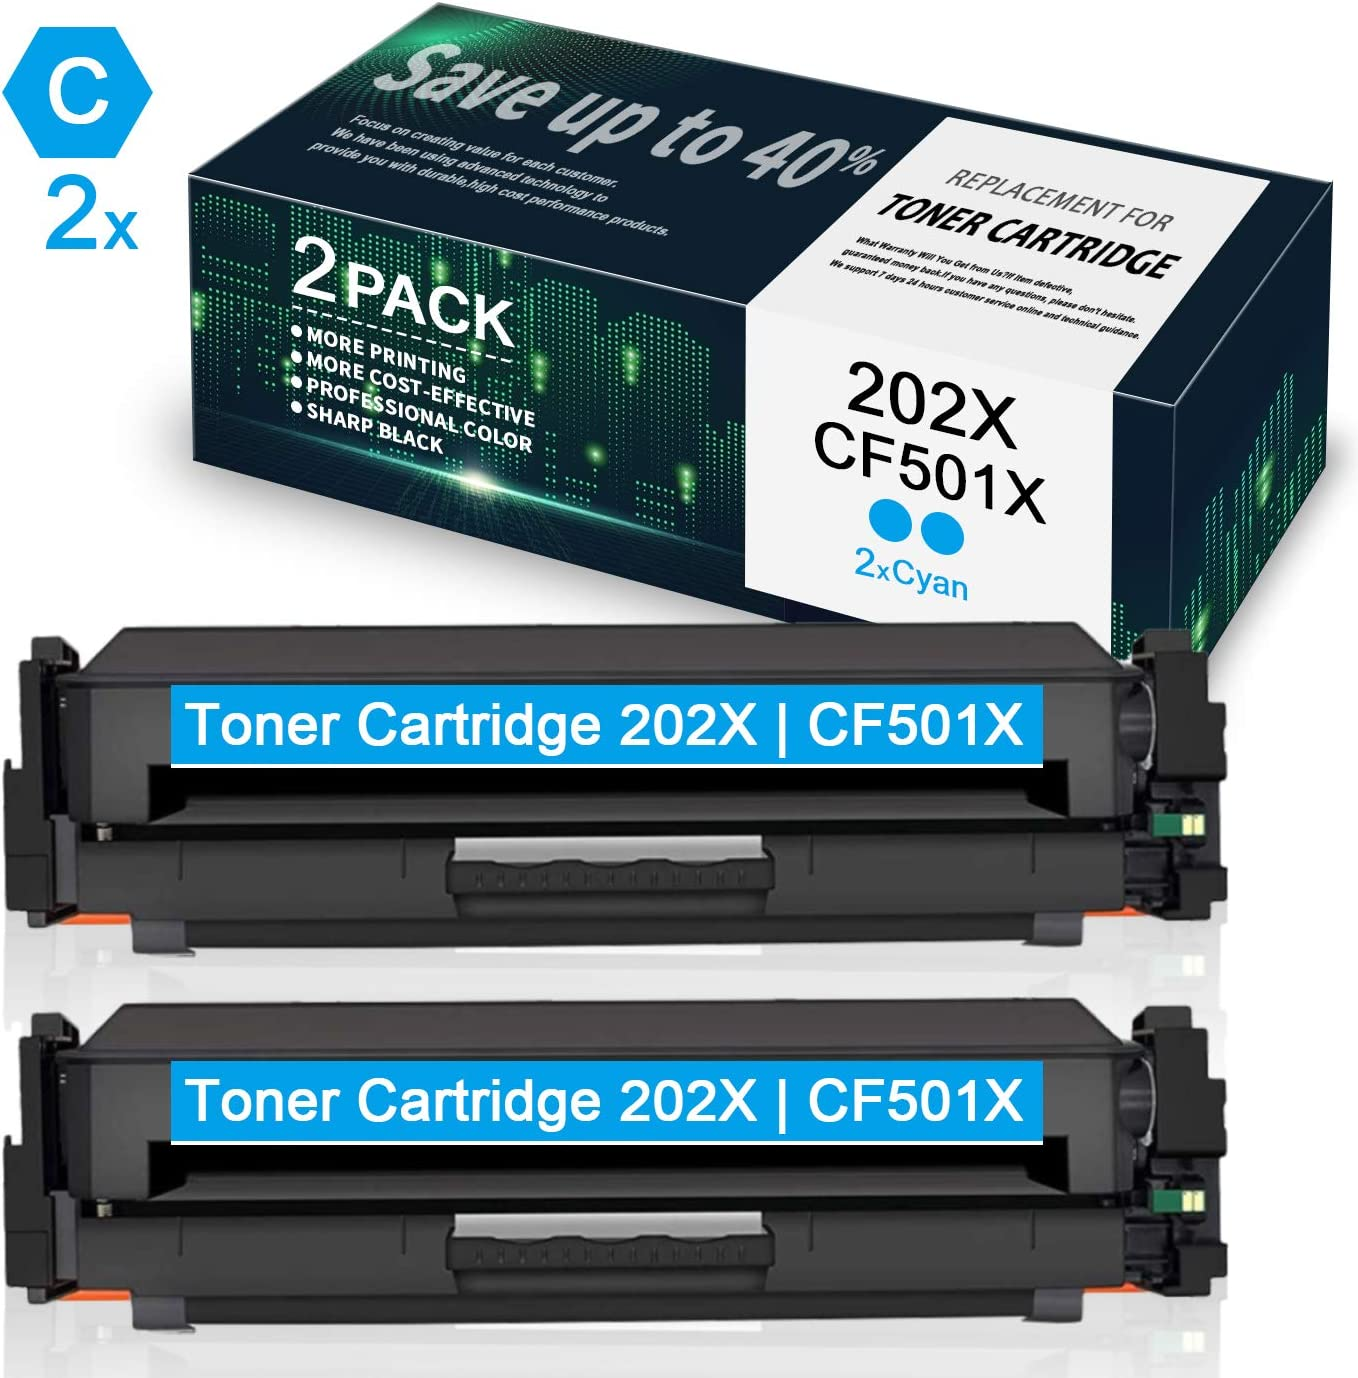 CF503X Toner Cartridge Compatible for HP Color Laserjet Pro M254nw M254dw M254dn MFP M280nw M281fdn M281fdw M281cdw 4 Pack High Yield Magenta 202X by VaserInk